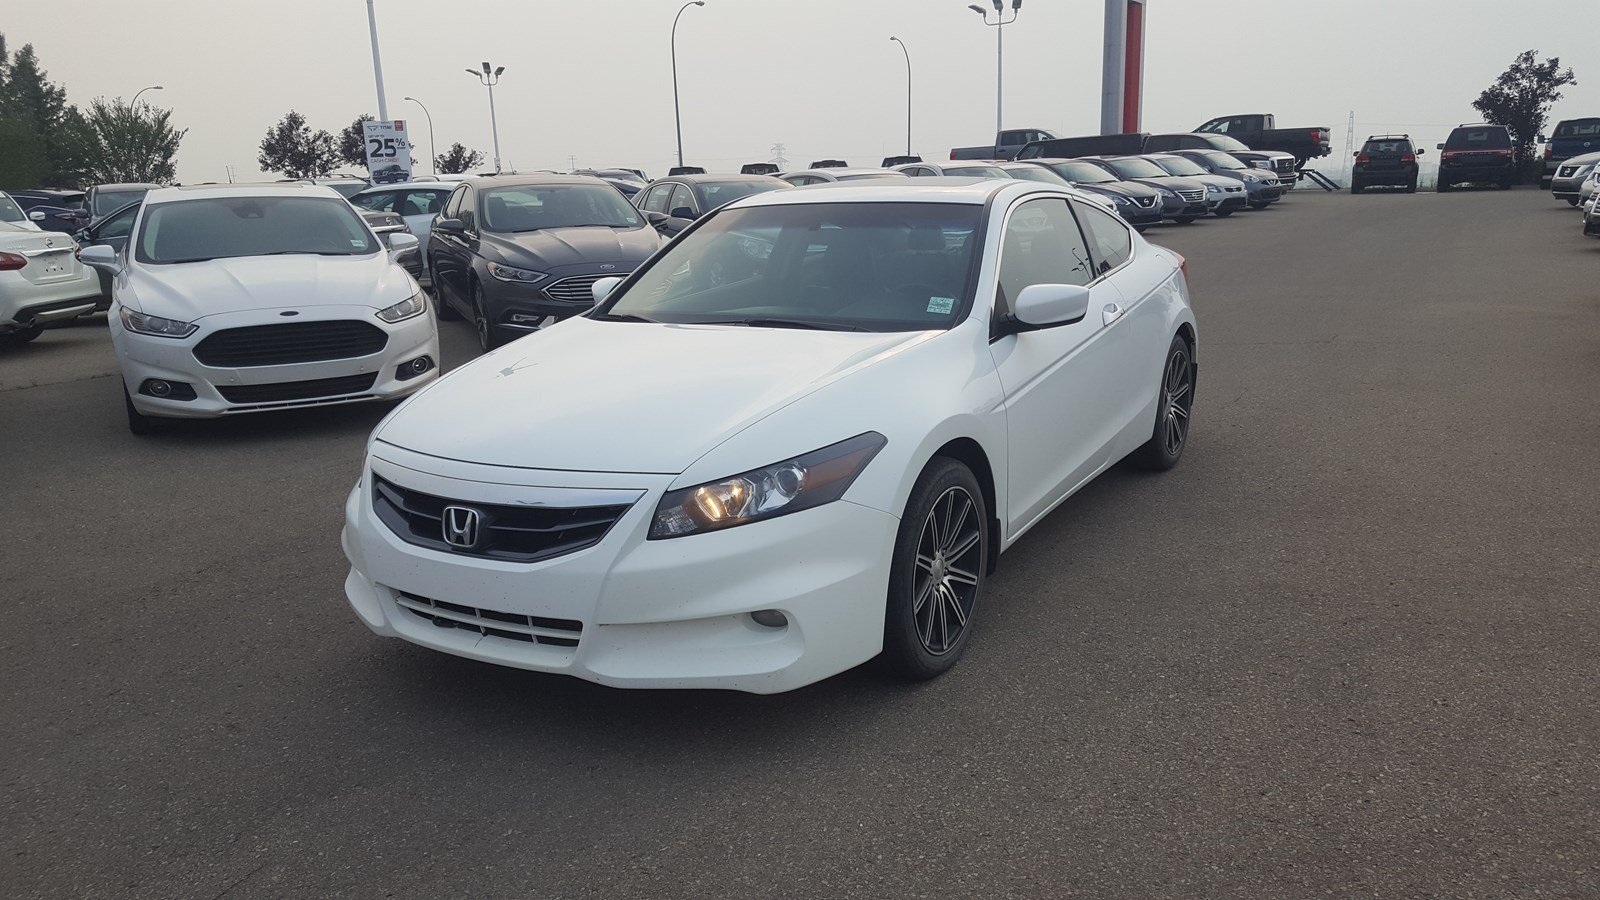 Pre Owned 2012 Honda Accord Cpe EX L Navigation (GPS), Leather